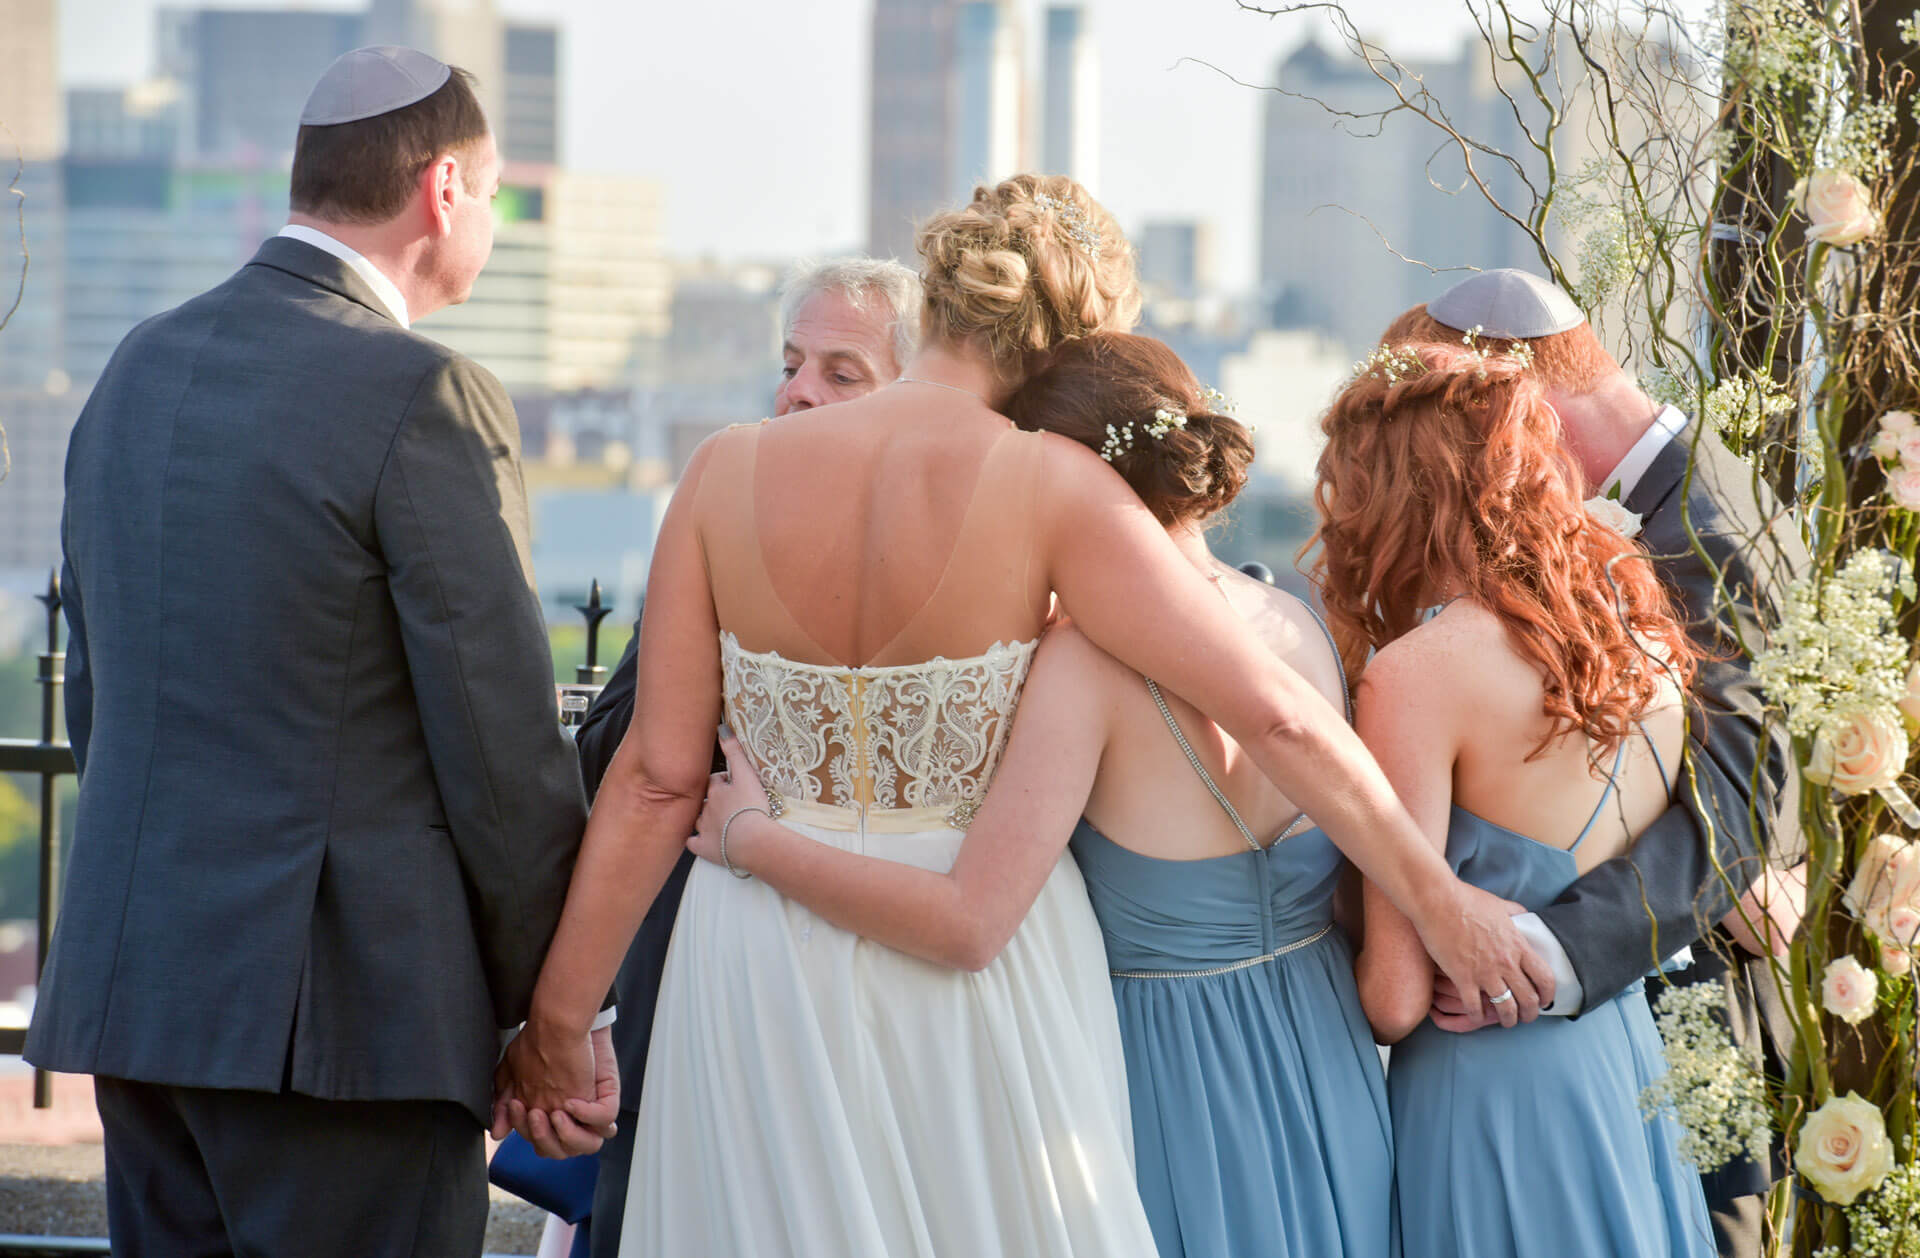 Documentary wedding photo of a new blended family during their Jewish ceremony on a rooftop in Detroit, Michigan.